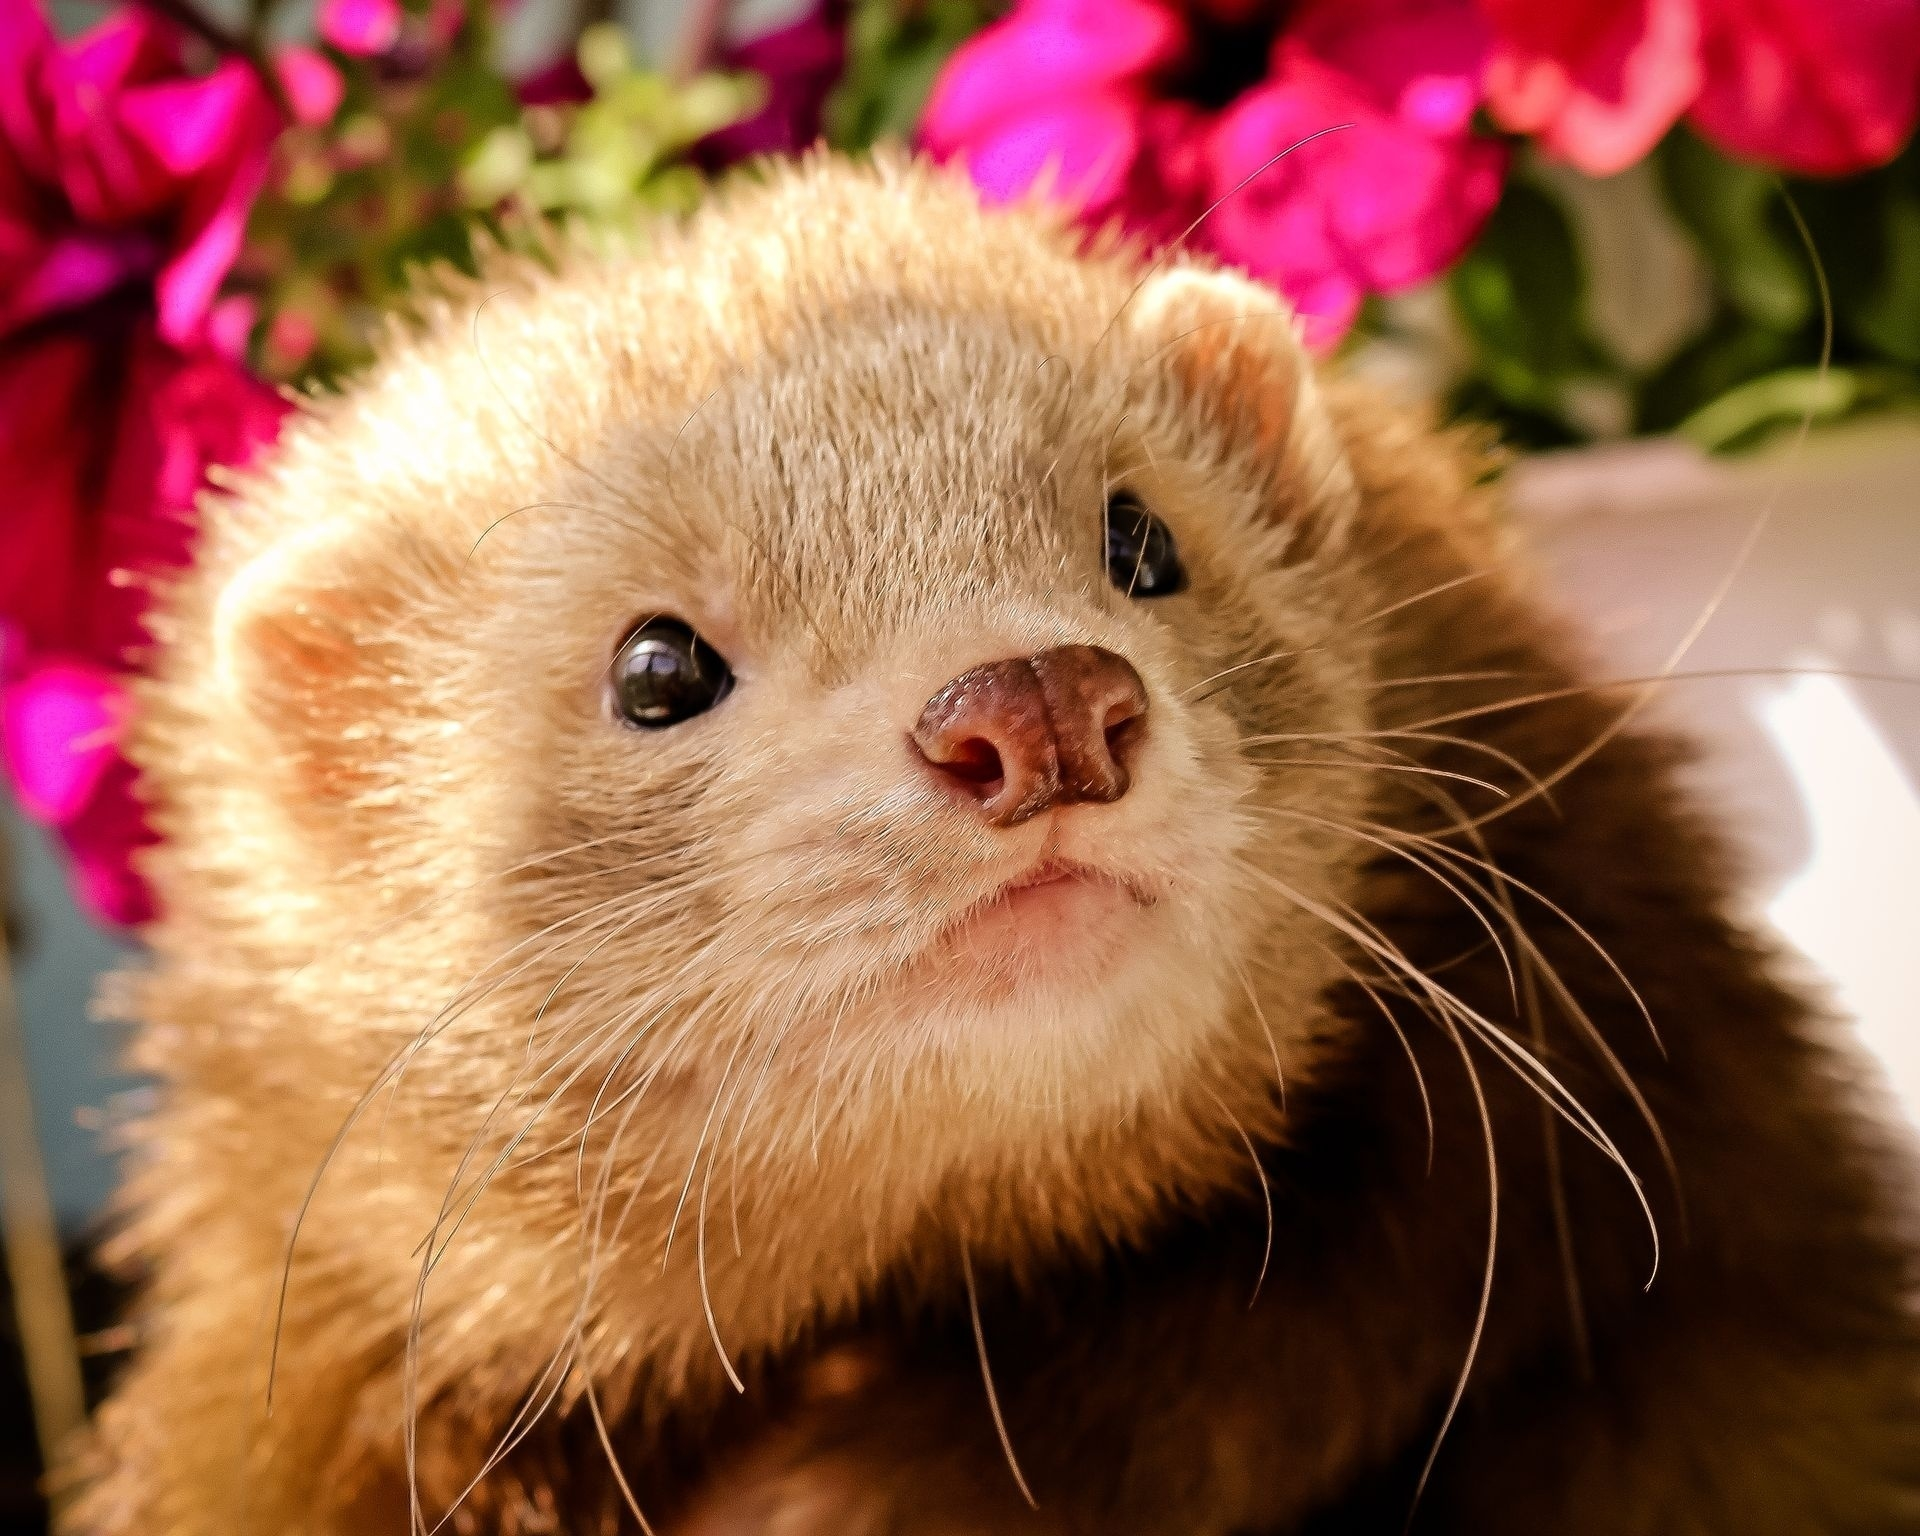 134634 download wallpaper Animals, Ferret, Polecat, Muzzle, Sight, Opinion, Animal screensavers and pictures for free